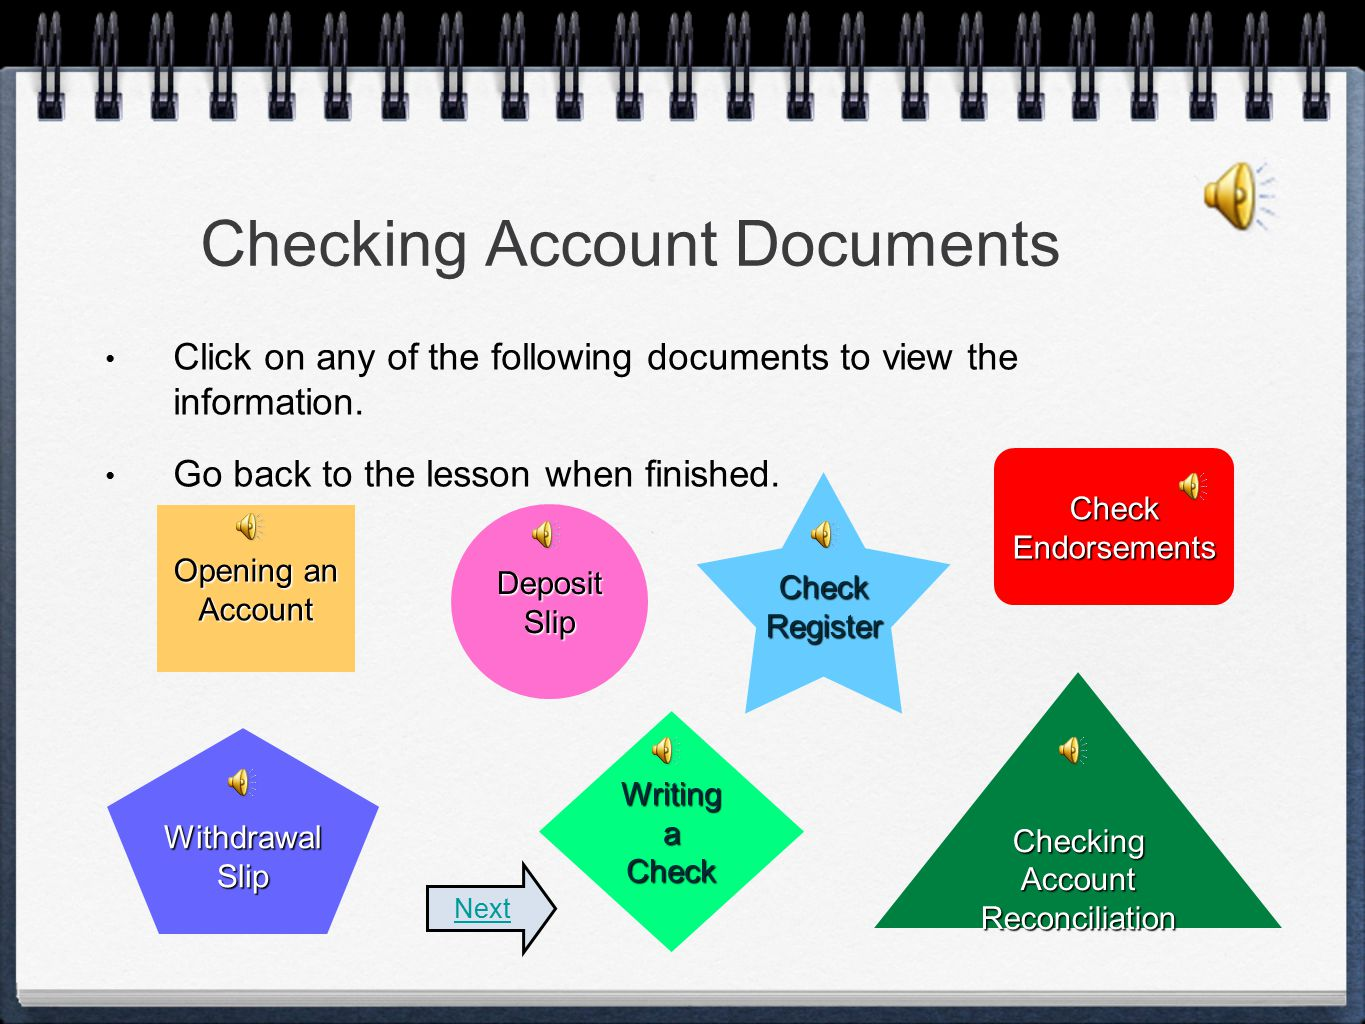 Checking Account Documents Click on any of the following documents to view the information.